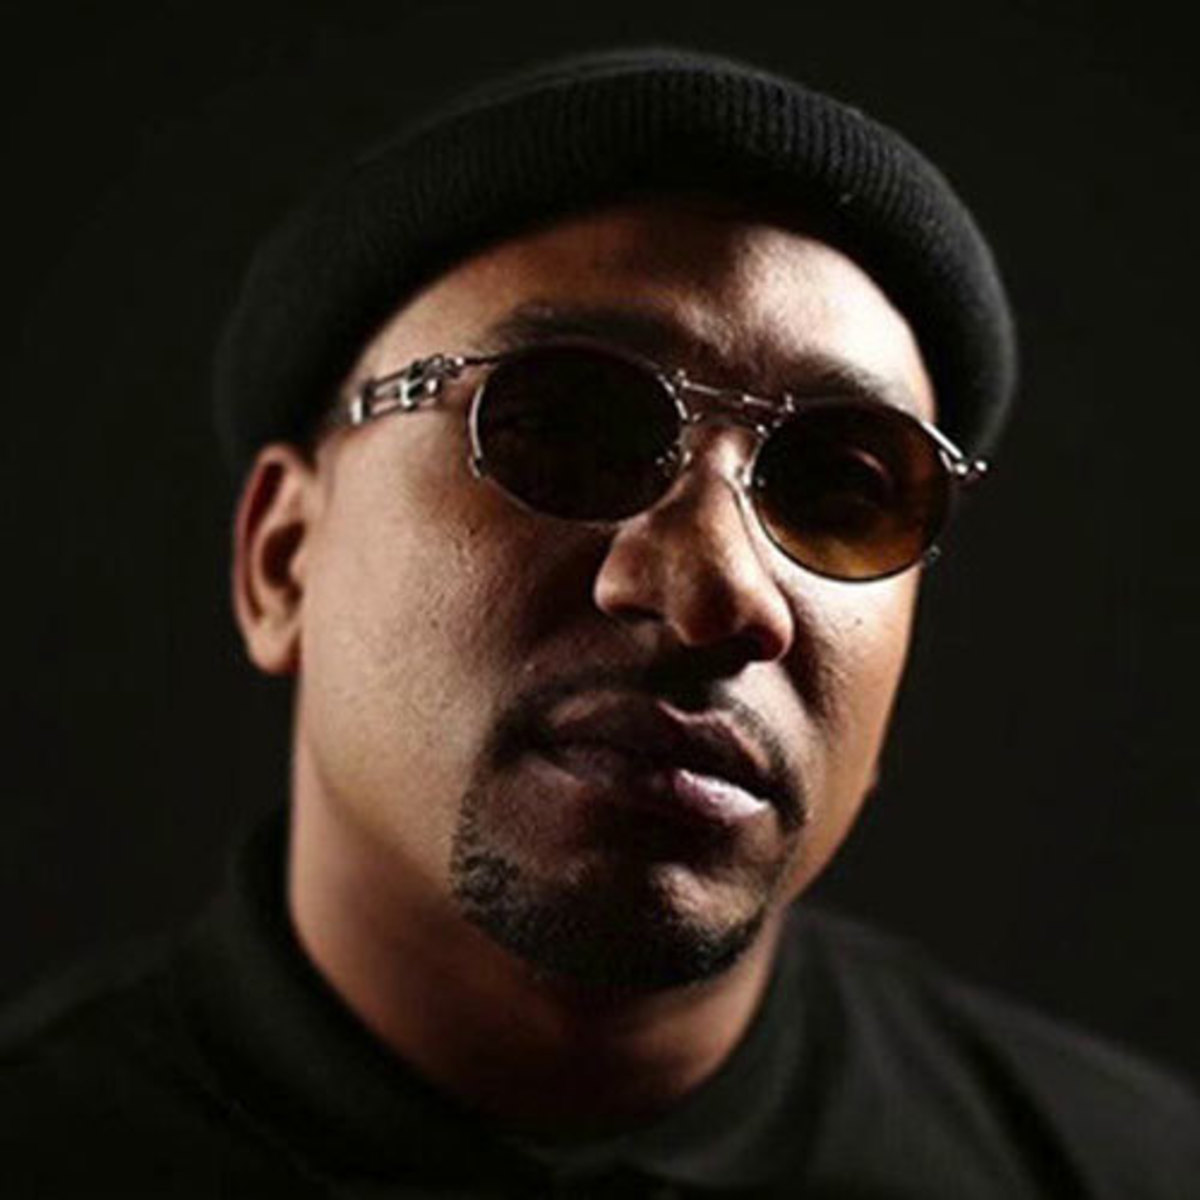 cyhi-the-prynce-down.jpg